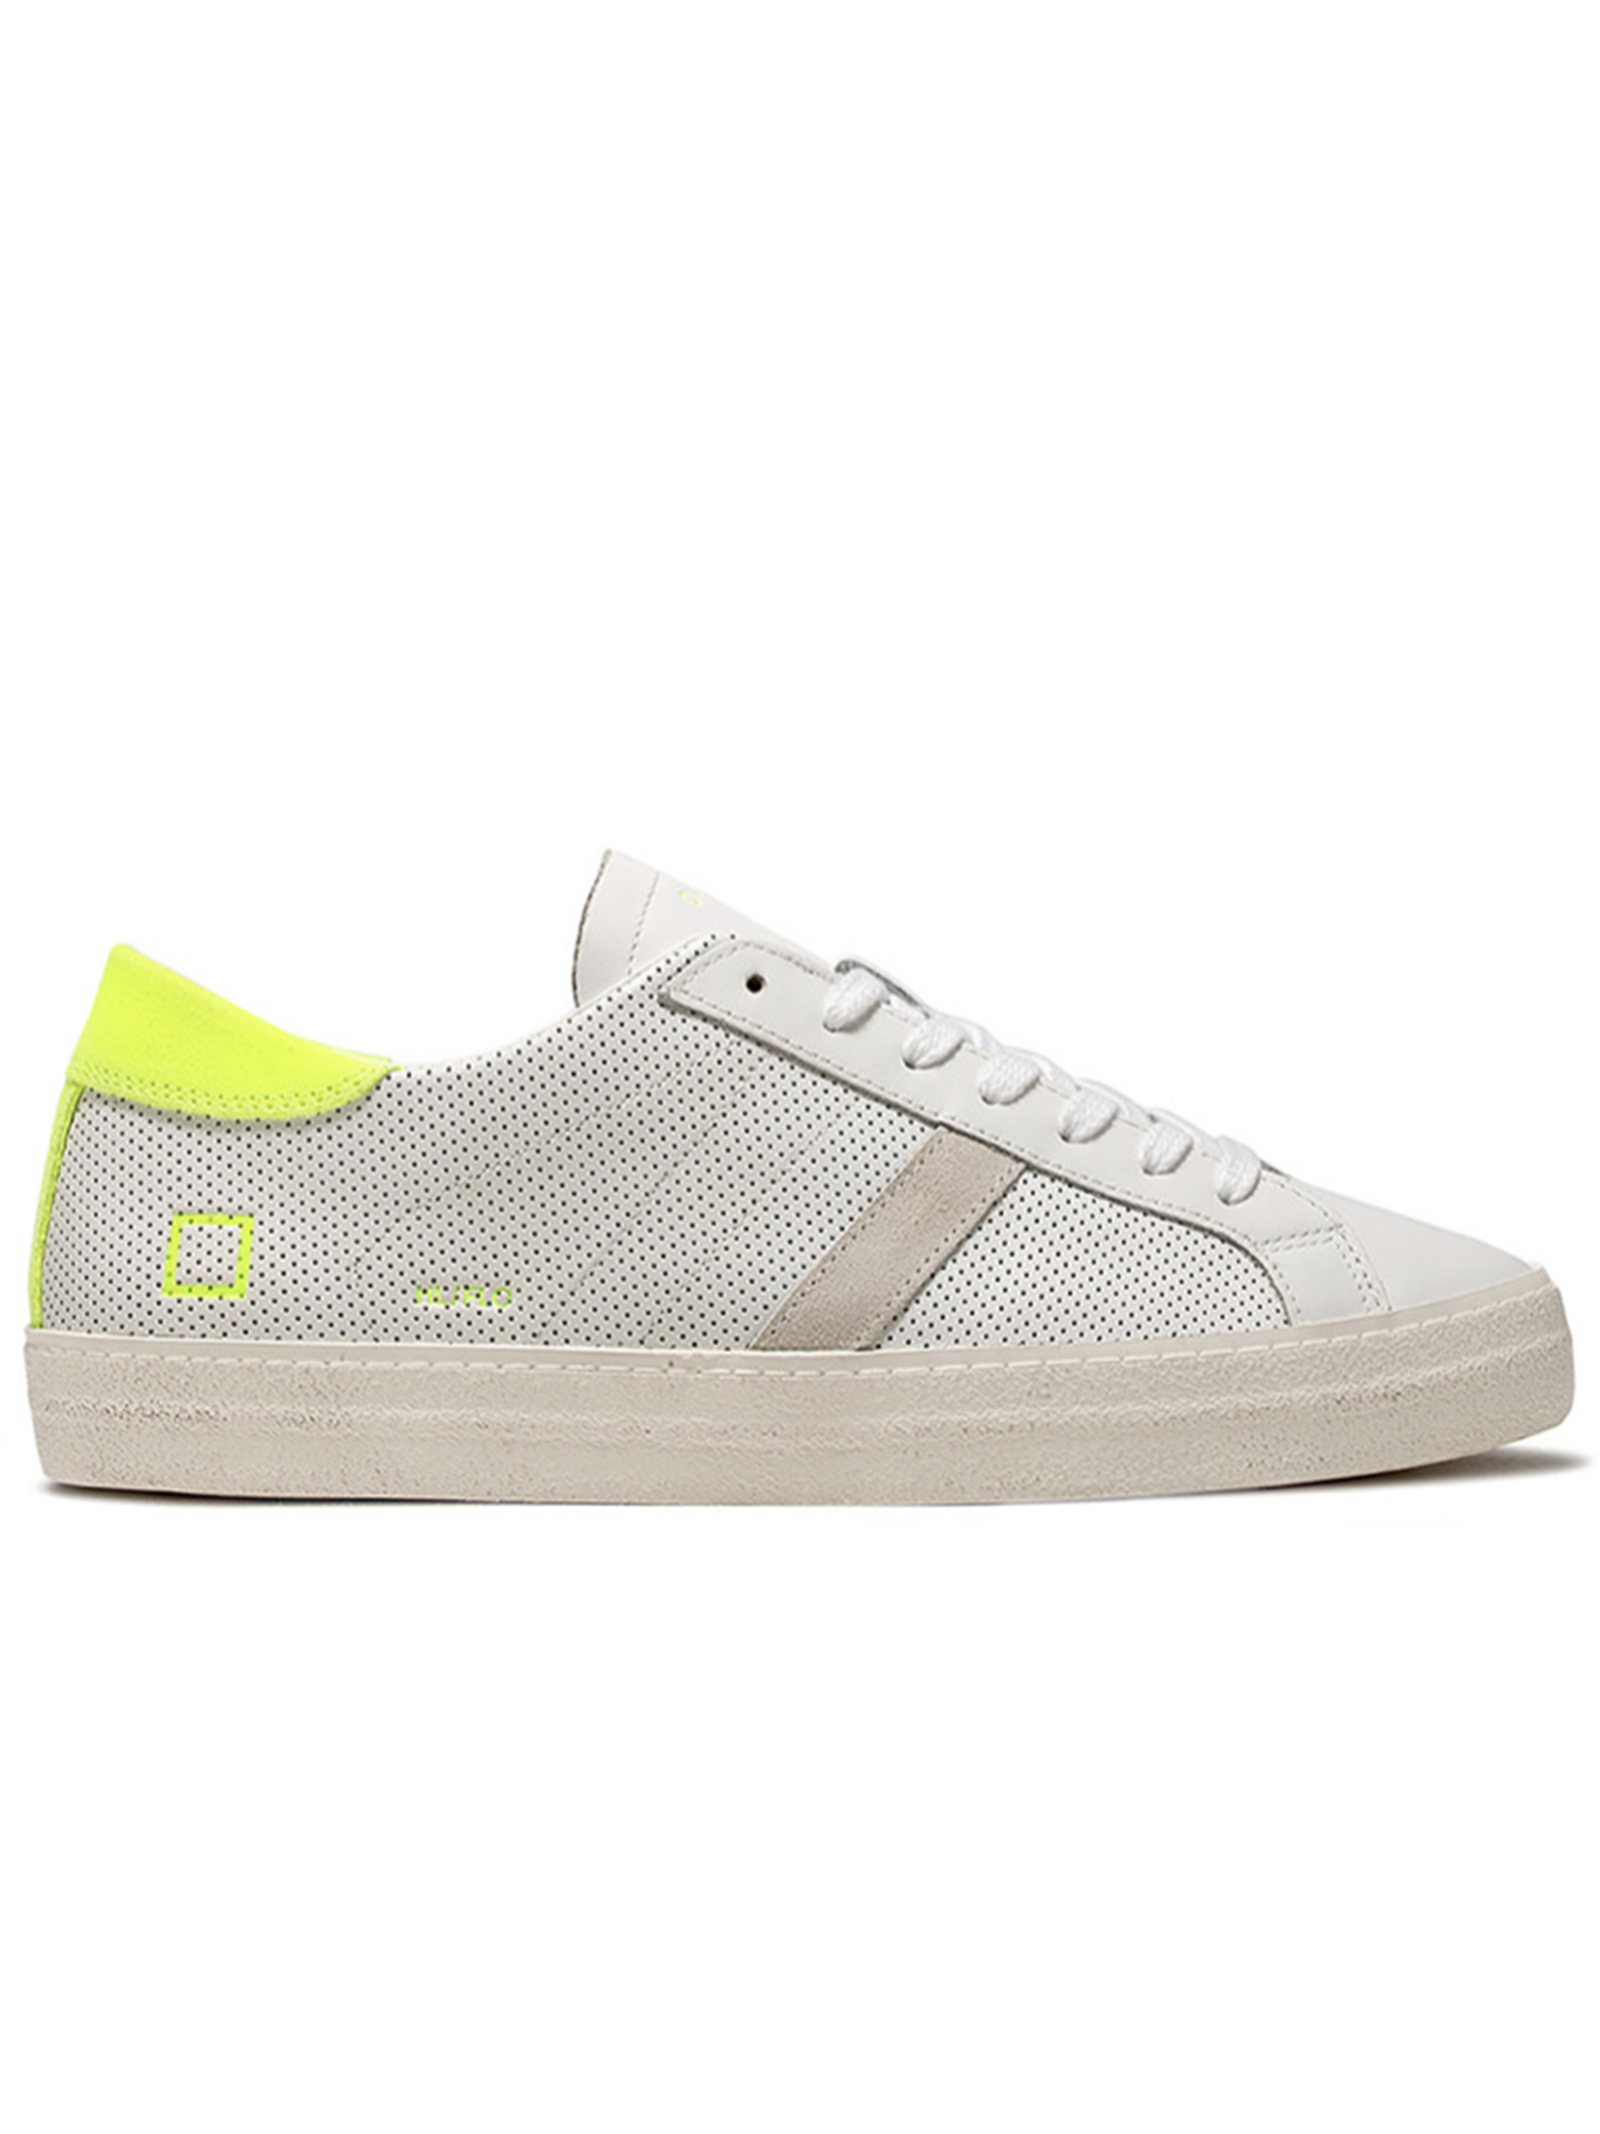 D.A.T.E. |  | HILL LOW FLUO PERF.WHITE YELLOWWY